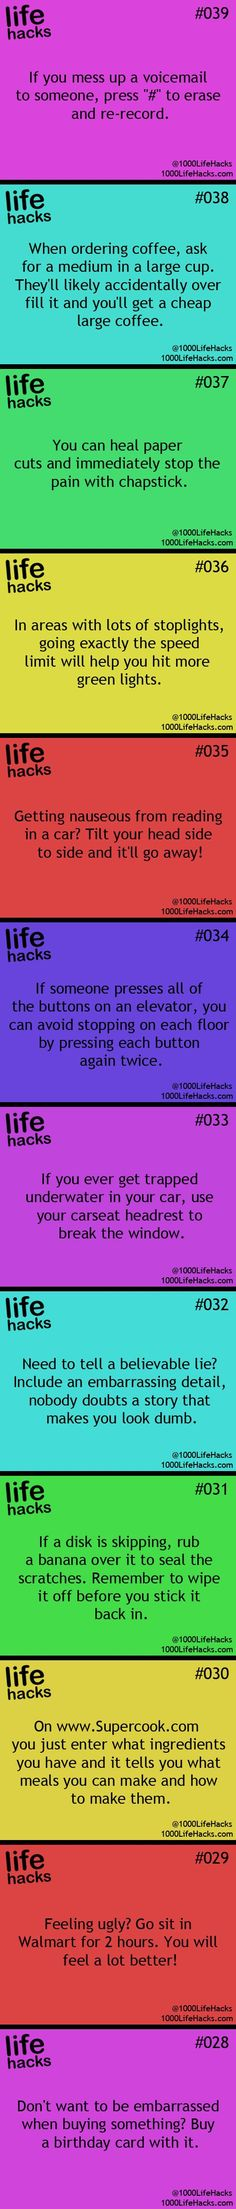 25 Useful Life Hacks, even though I don't think I'll be driving my car off a bridge into a body of water anytime soon :3